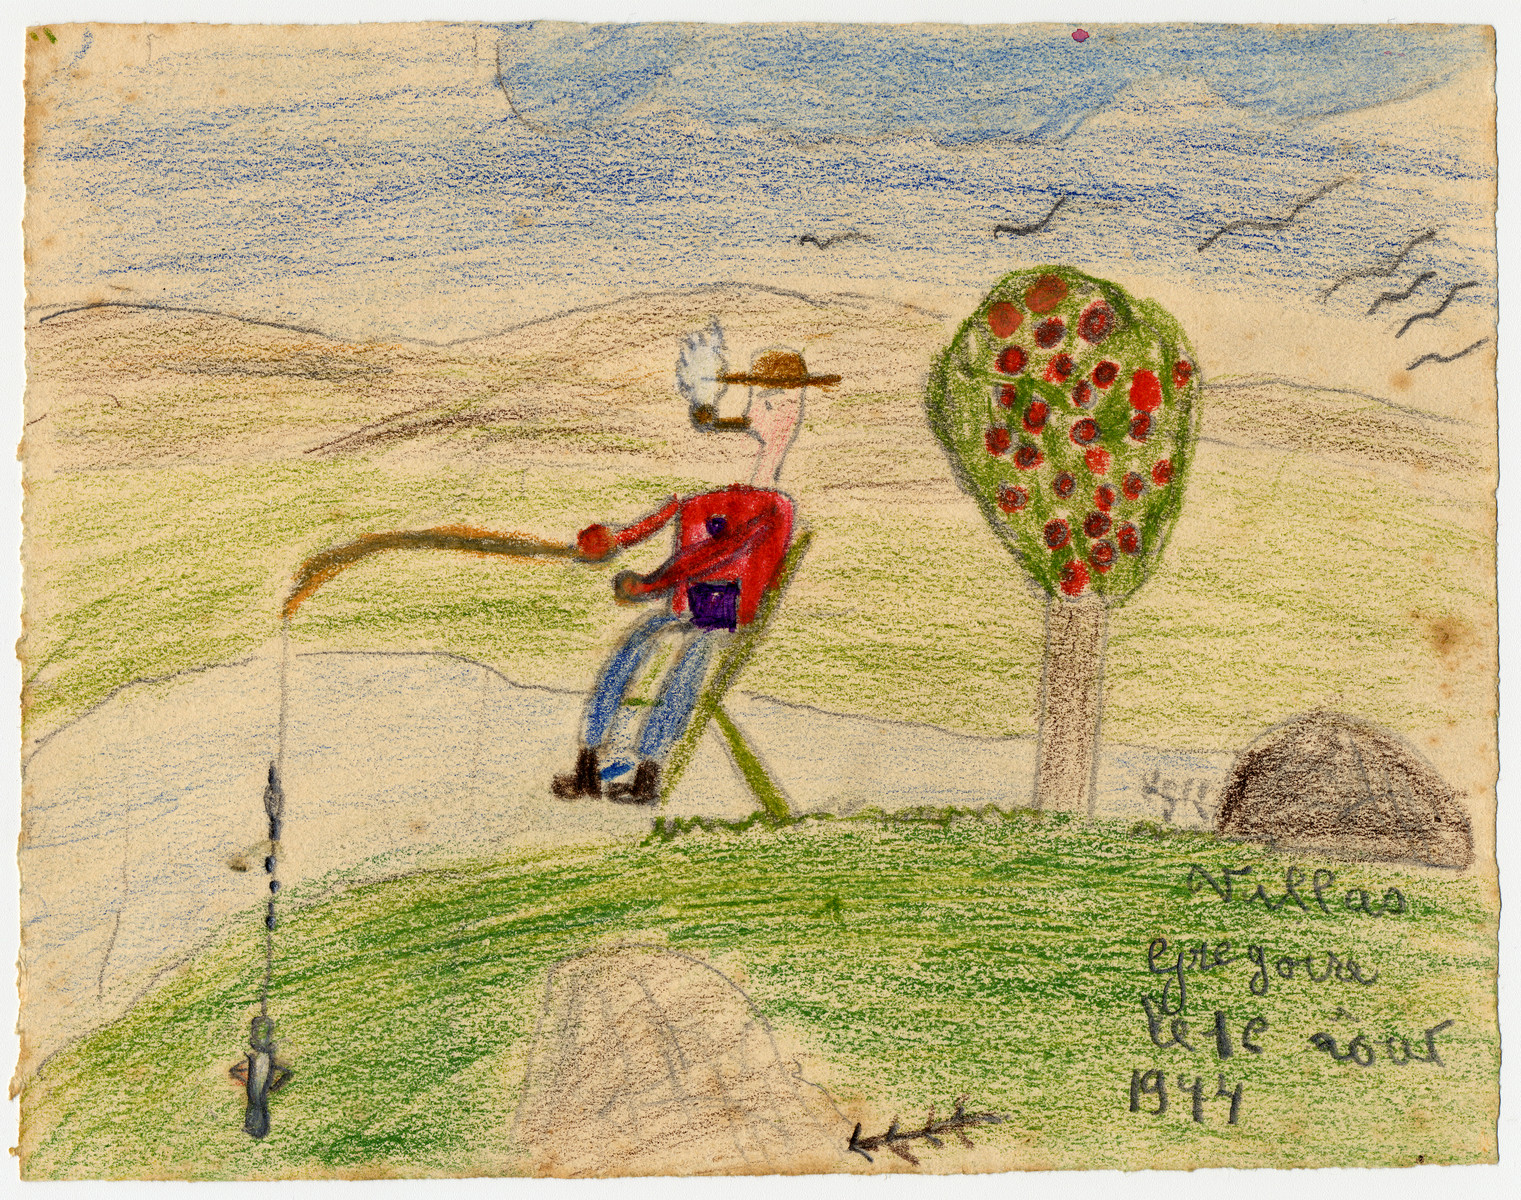 A child's drawing of a man going fishing created by a child in Chateau de la Hille.